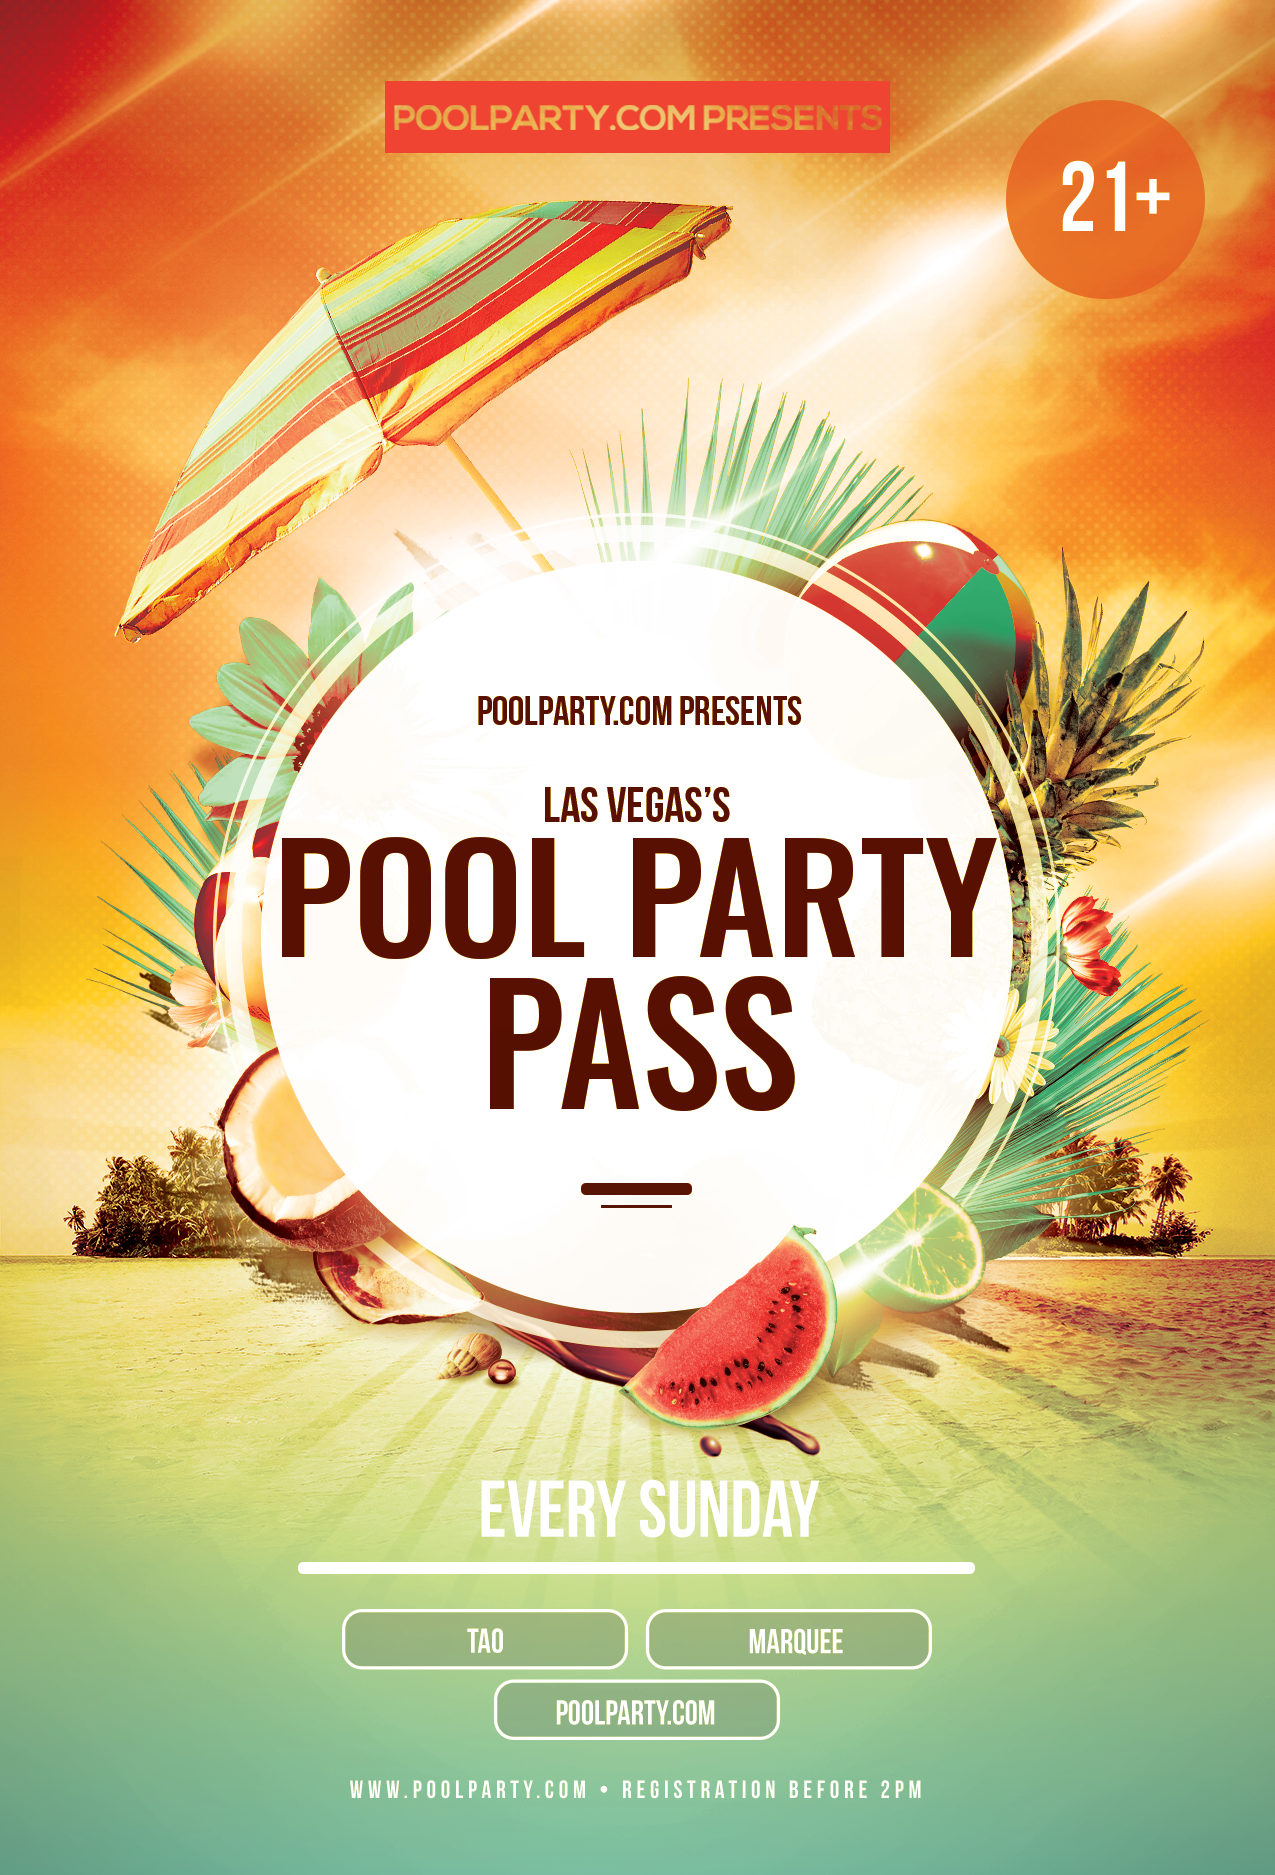 Sunday's Pool Party Pass (August 25th)*NOW INCLUDING FREE ADMISSION TO TAO NIGHTCLUB*